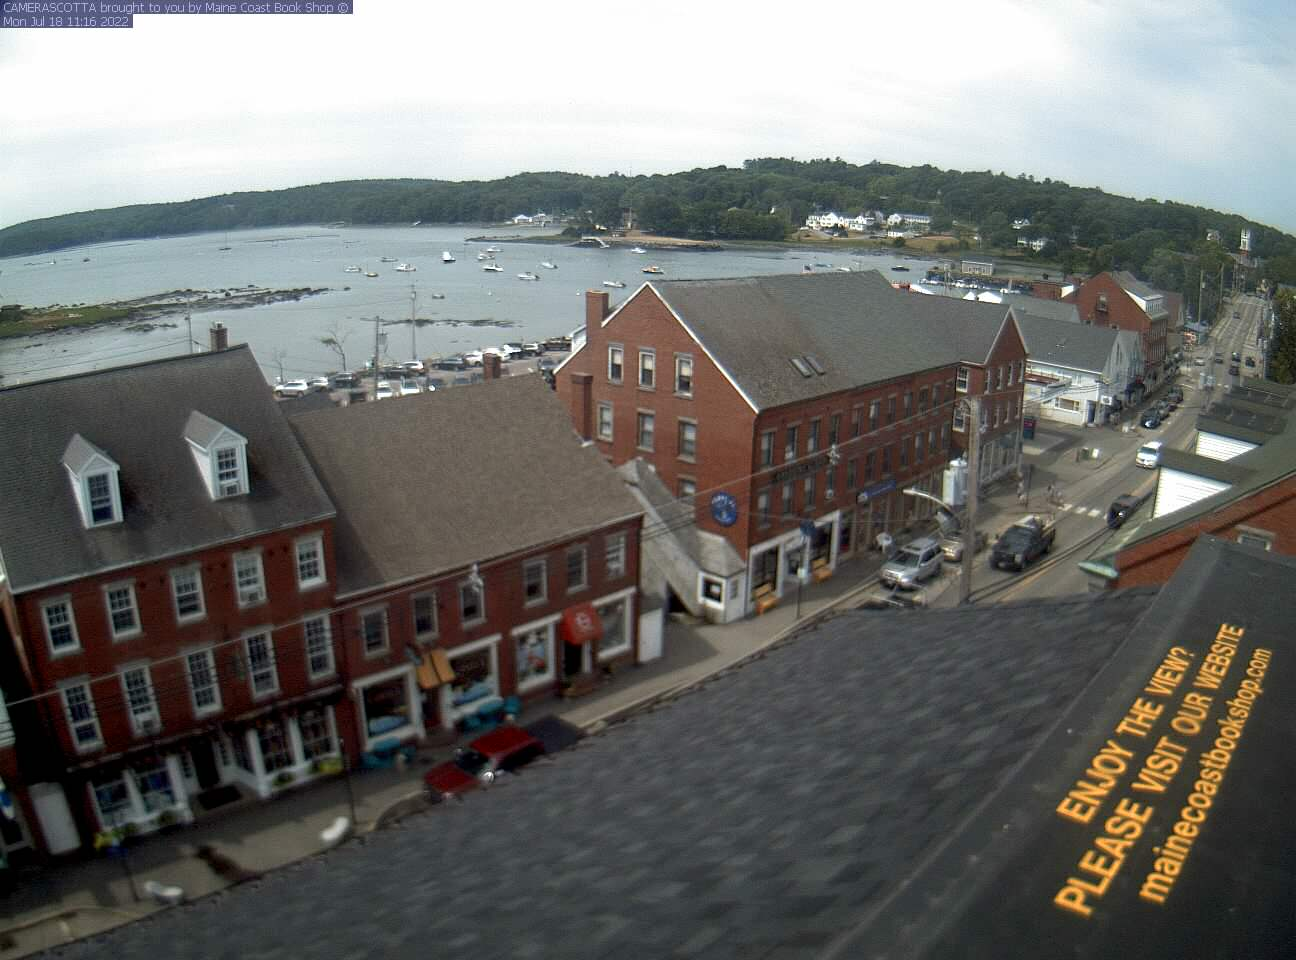 Damariscotta webcam - Damariscotta webcam, Maine, Lincoln County